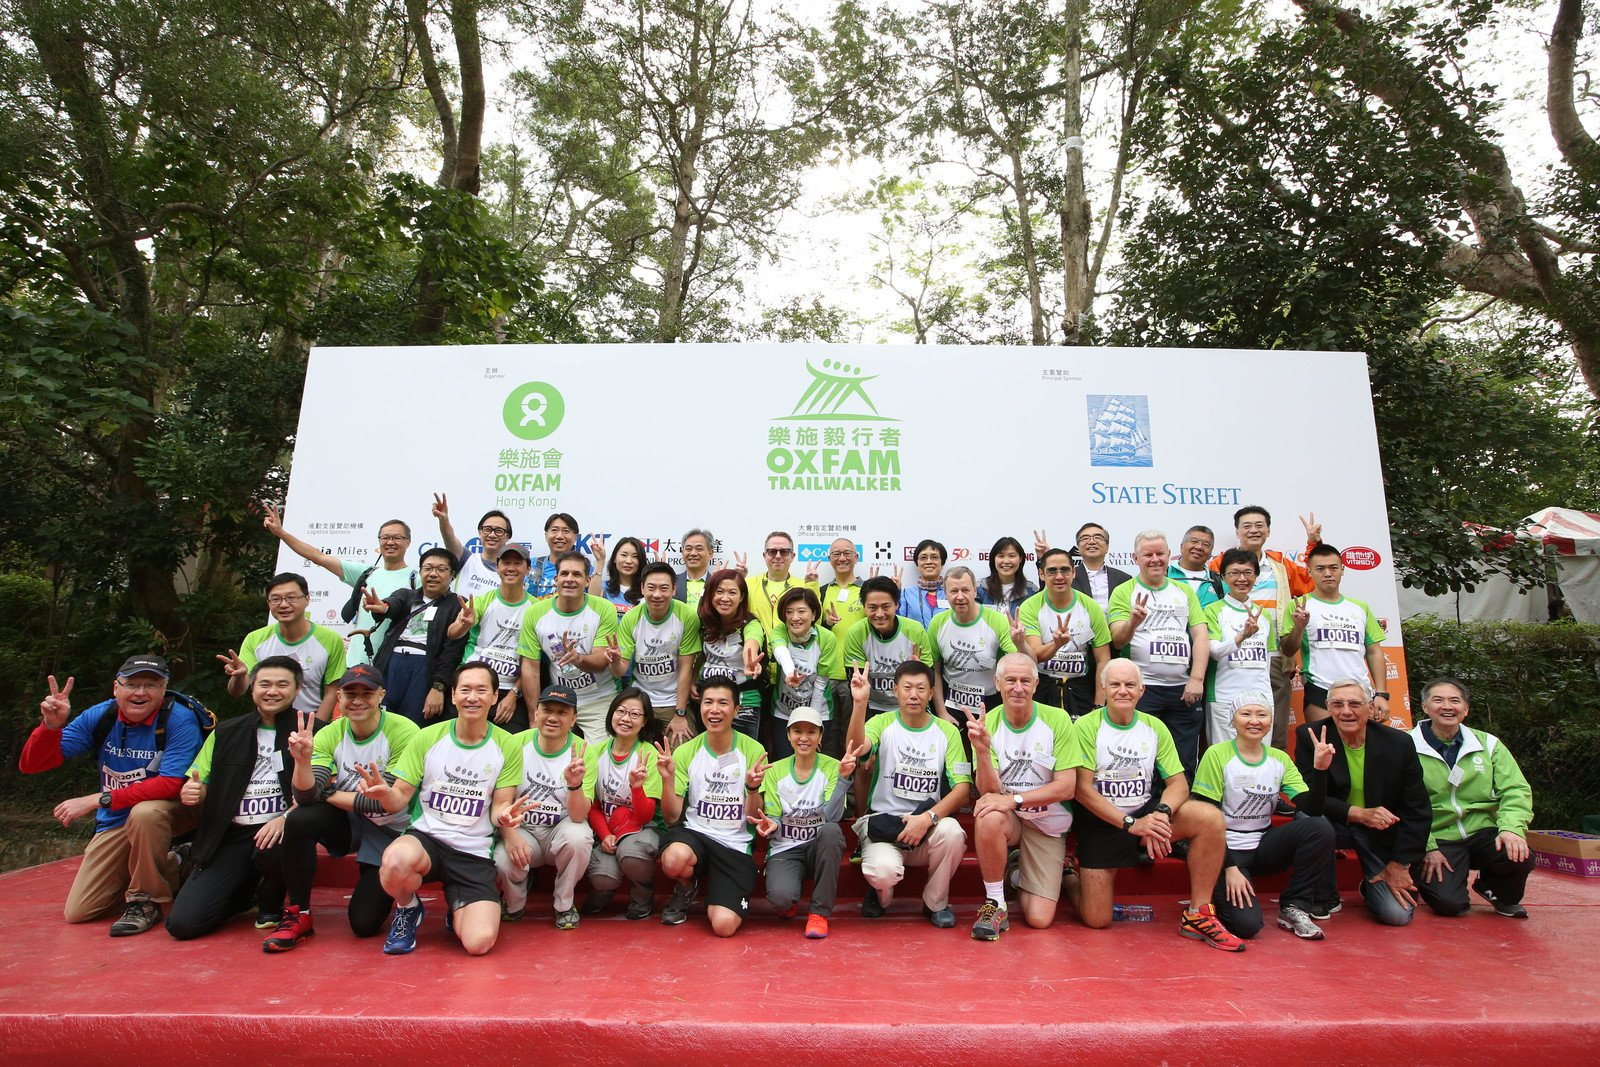 The Oxfam Trailwalker 2014 Kick-Off ceremony was officiated by Thomas Lynch, representative from State Street Corporation, Principal Sponsor of Oxfam Trailwalker 2014 (front row, first from the left), Bernard Chan, Chair of Oxfam Trailwalker Advisory Committee (front row, fourth from the left), Stephen Fisher, Director General of Oxfam Hong Kong (front row, first from the right), Henry Ho, Fundraising and Communications Committee Member of Oxfam Hong Kong (second row, first from the left).